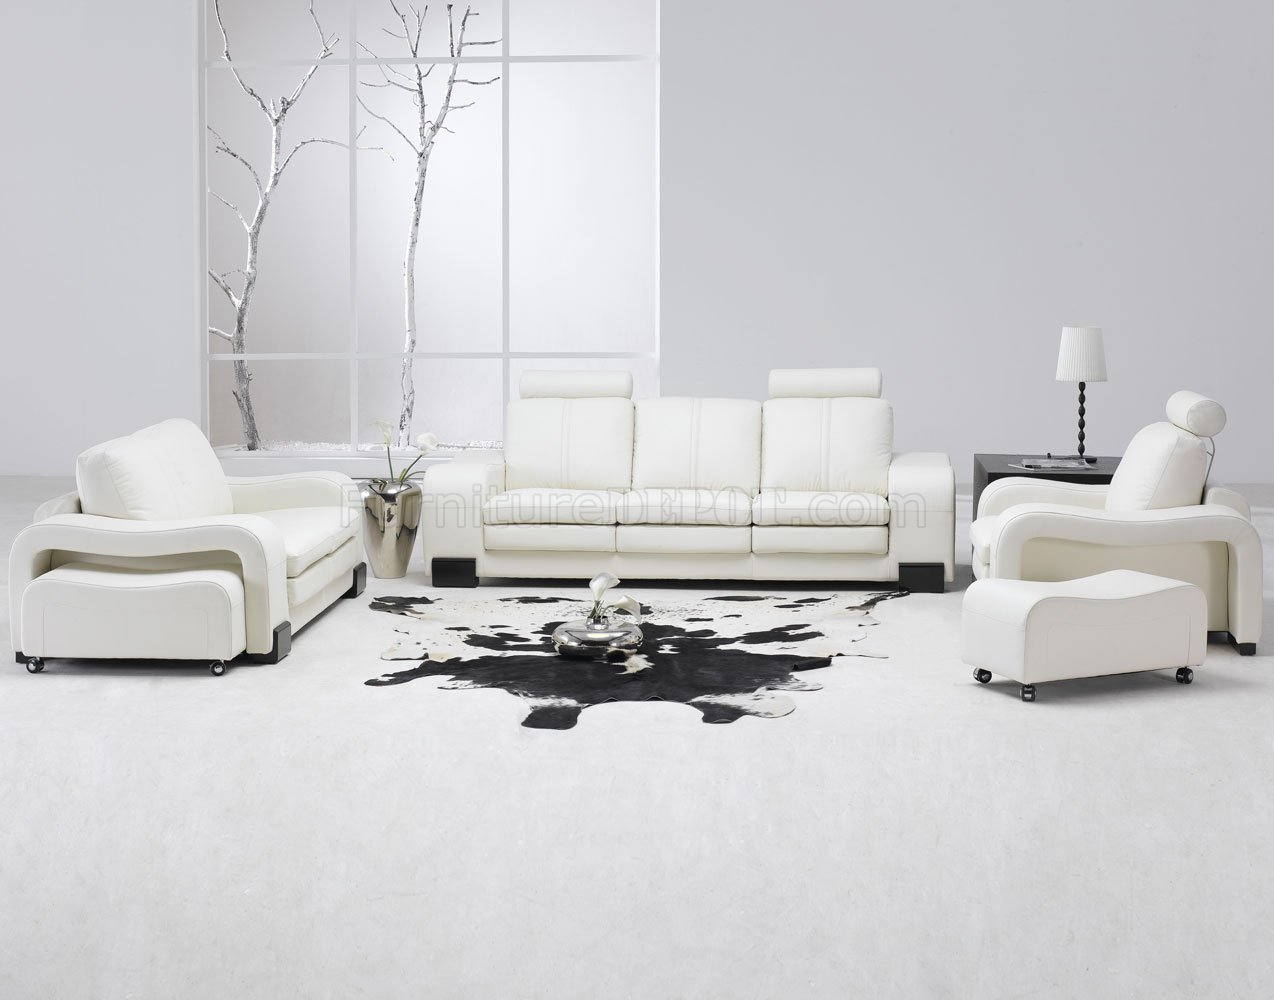 White Leather 4Pc Modern Sofa, Loveseat, Chair & Couch Pertaining To 4Pc Beckett Contemporary Sectional Sofas And Ottoman Sets (View 9 of 15)